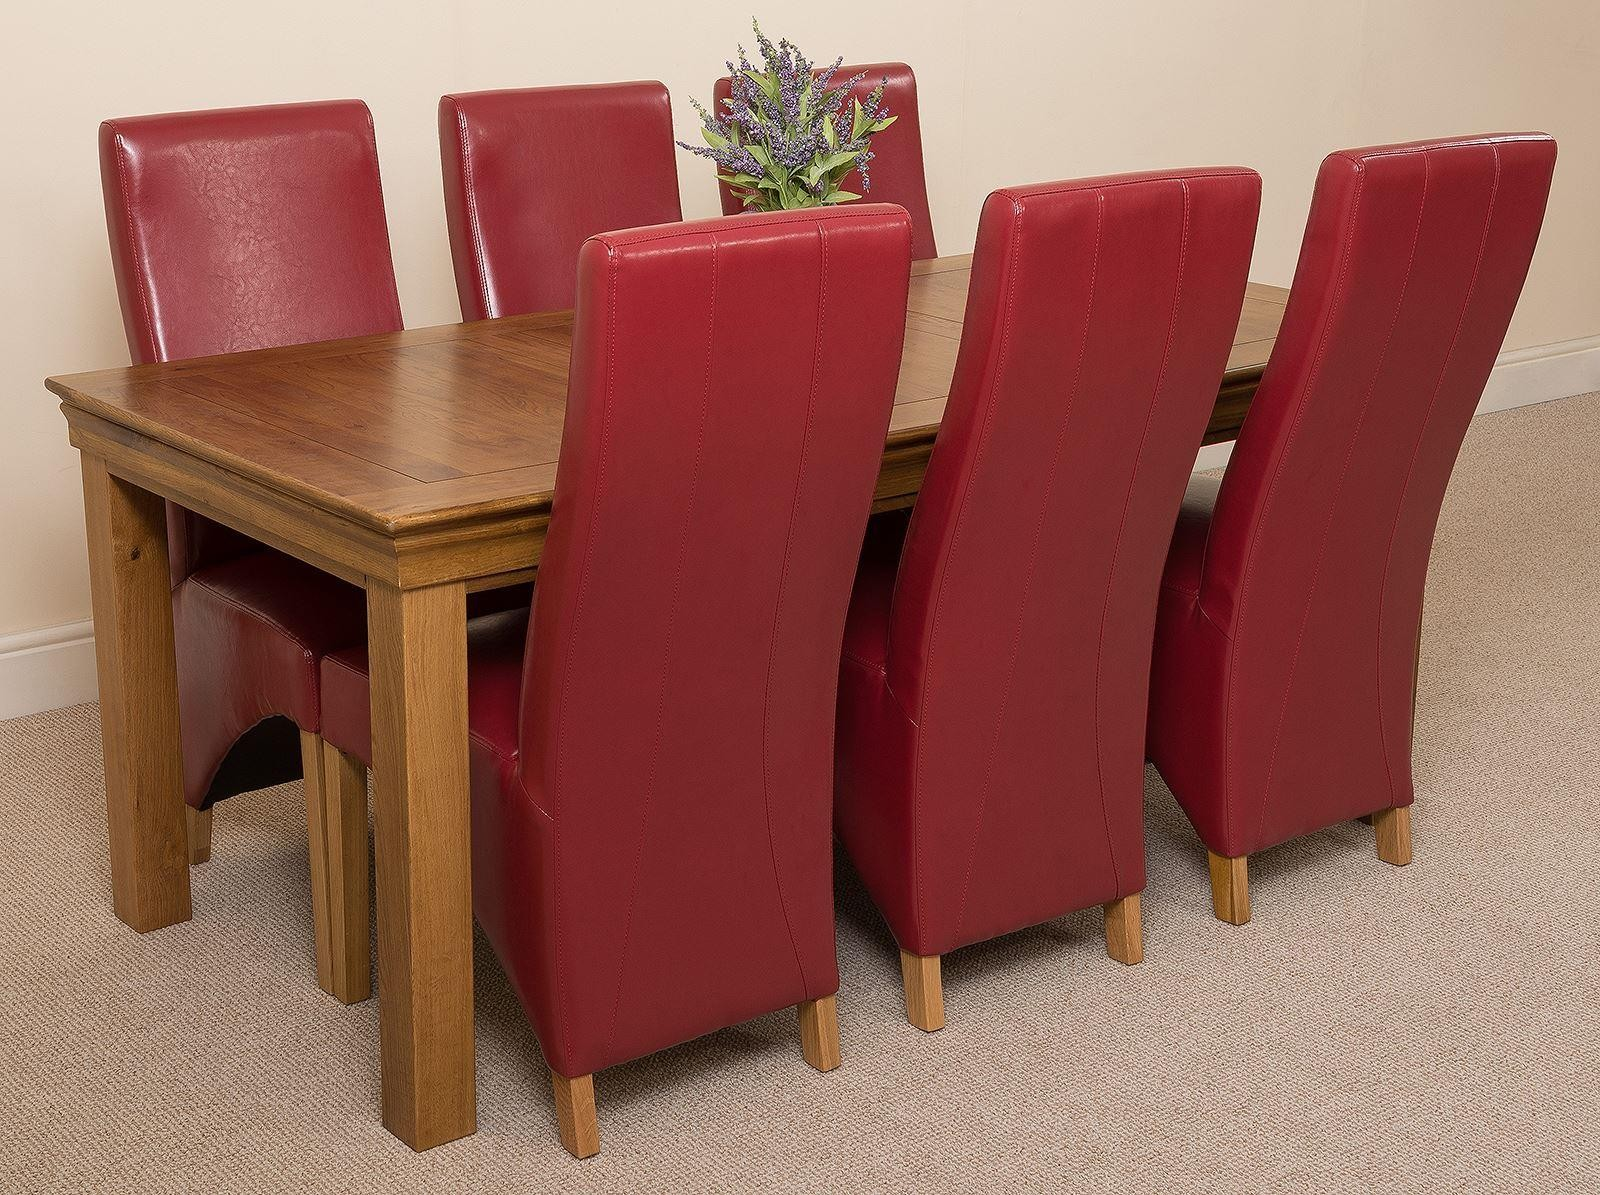 French Chateau Rustic Solid Oak 180cm Dining Table with 6 Lola Dining Chairs [Burgundy Leather] & French Chateau Rustic Oak Dining Table with 6 Burgundy Lola Dining ...